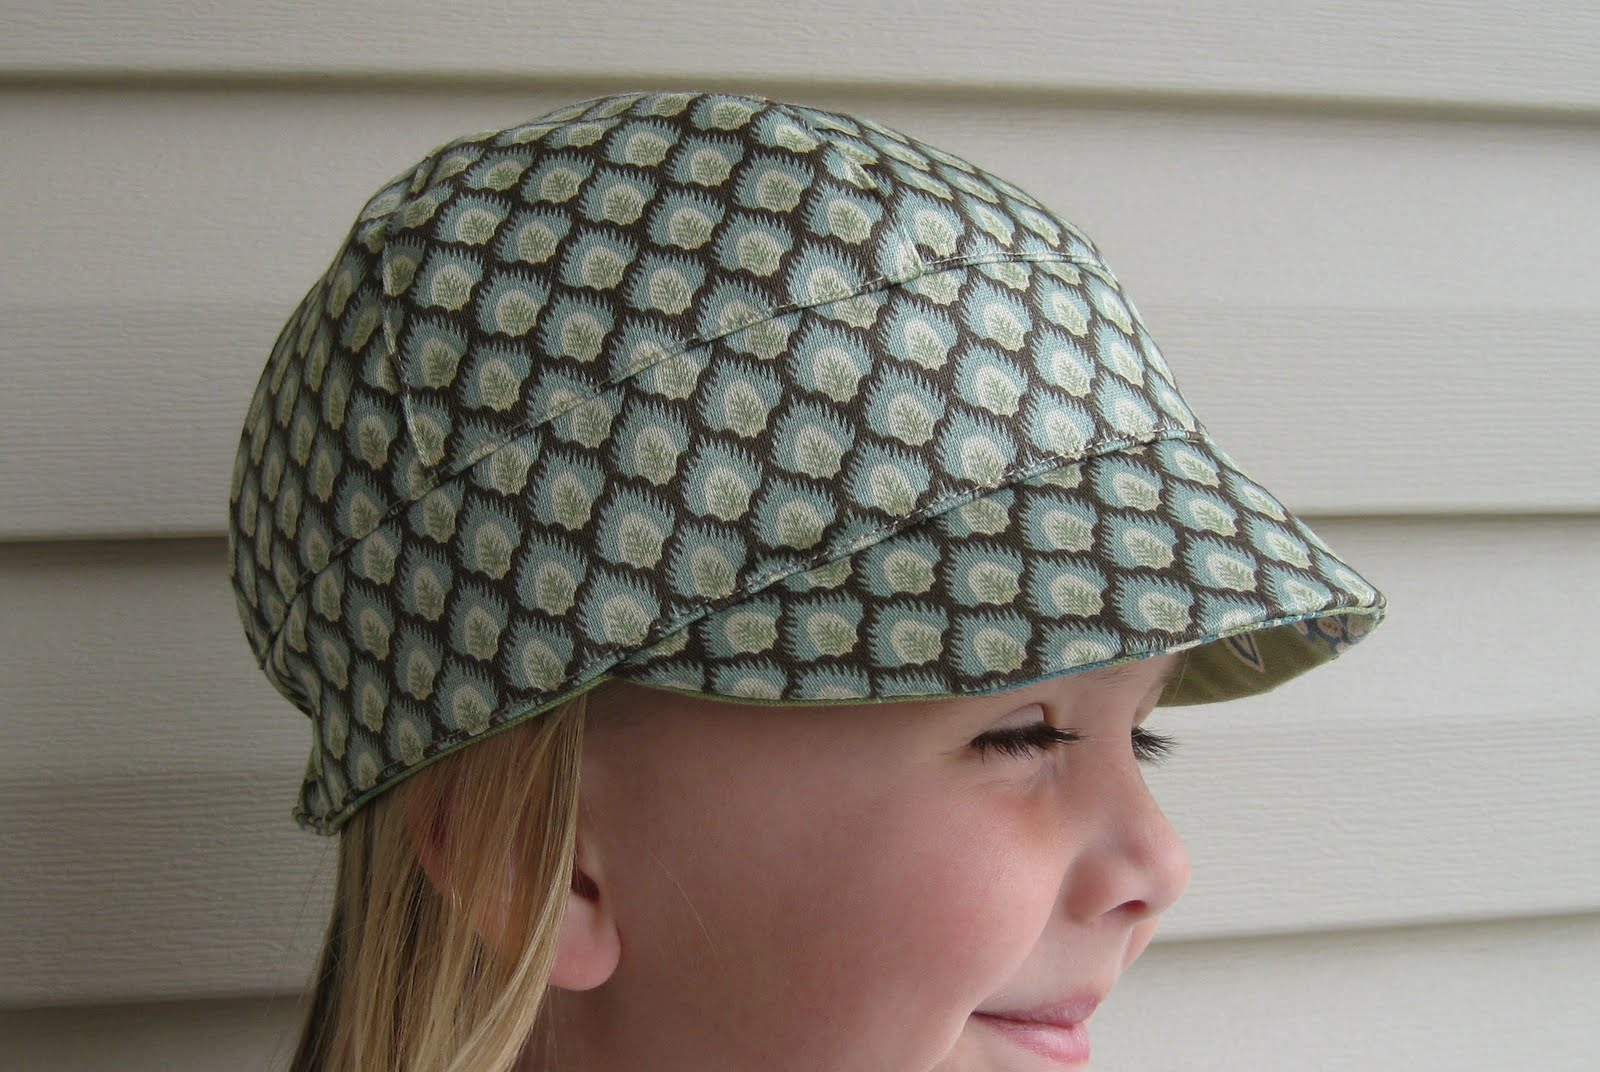 Here are some photos of some of the hats I made. de383a8ae583